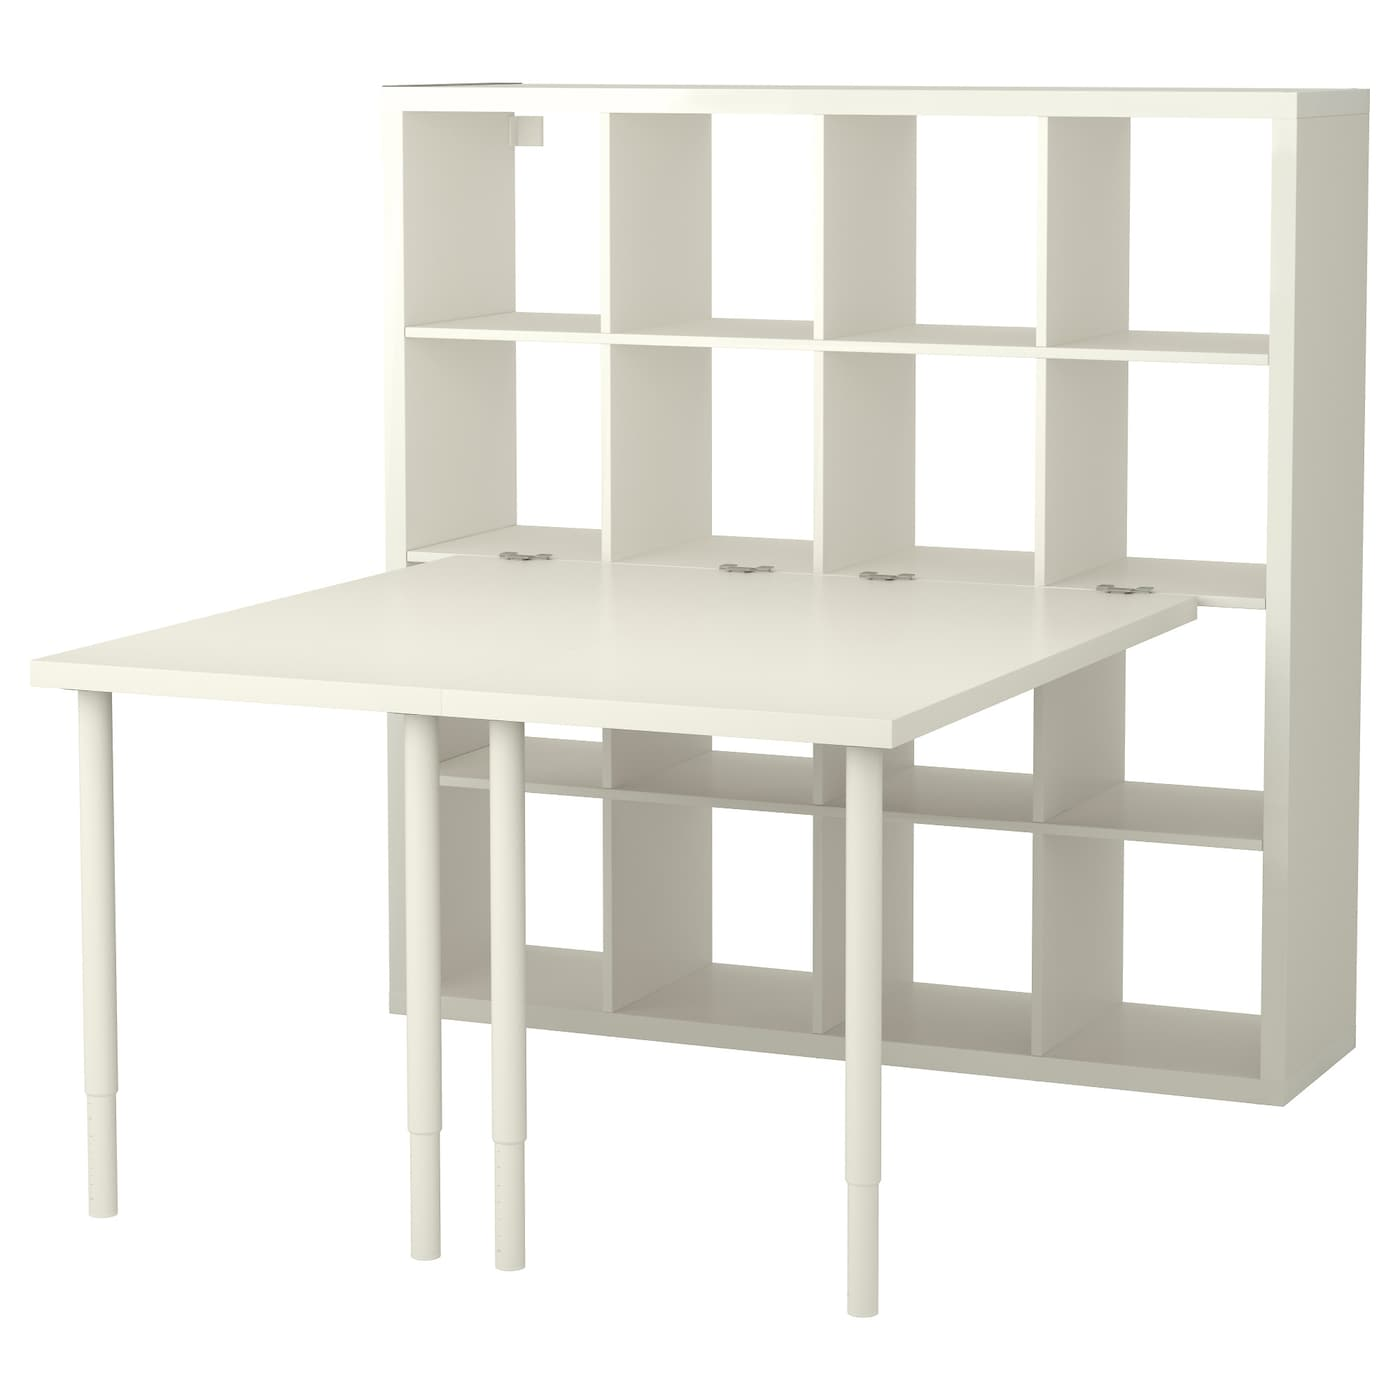 kallax desk combination white 147 x 147 cm ikea. Black Bedroom Furniture Sets. Home Design Ideas